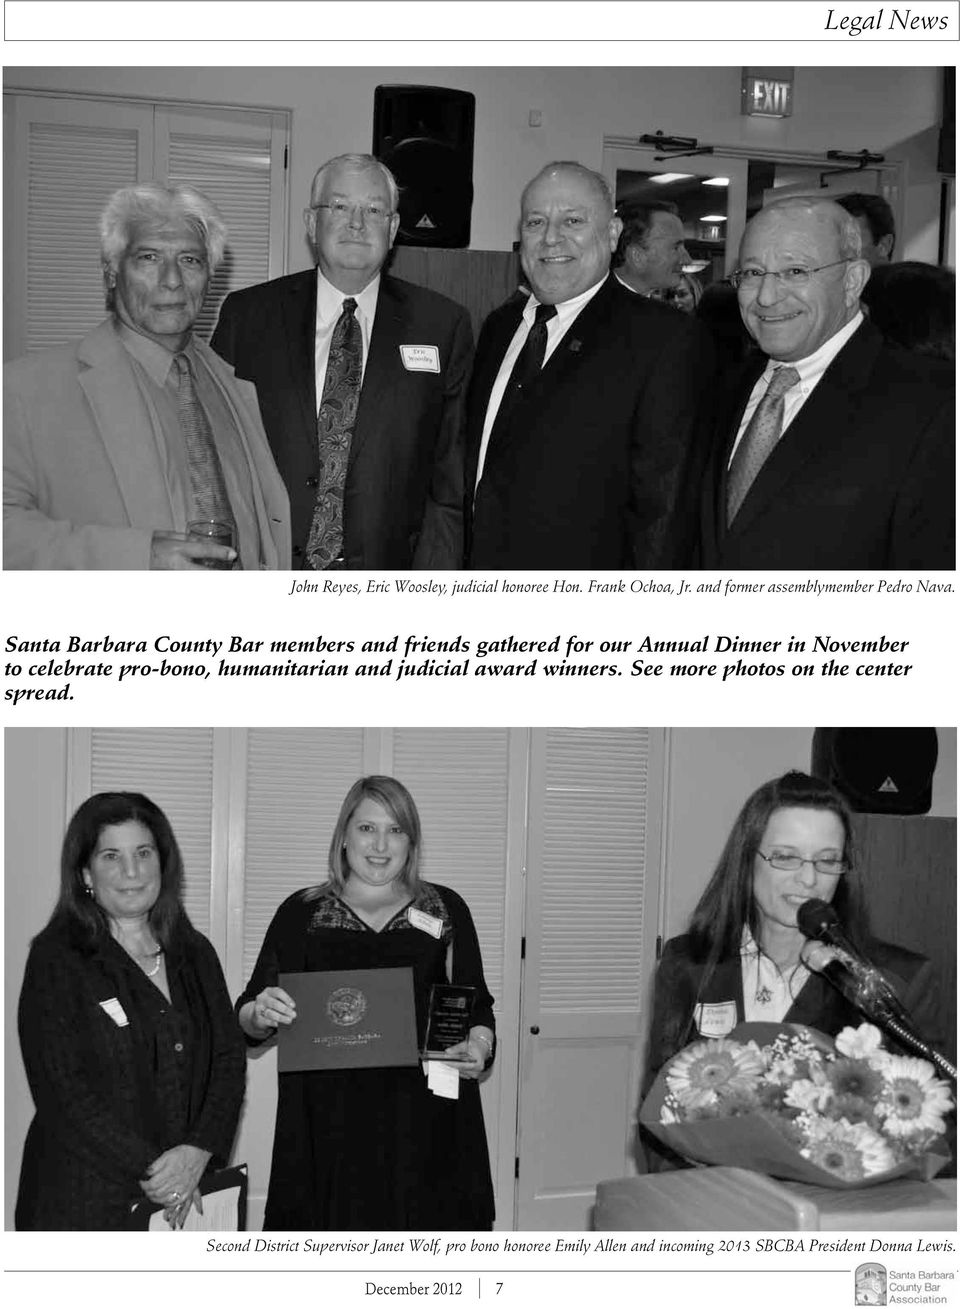 Santa Barbara County Bar members and friends gathered for our Annual Dinner in November to celebrate